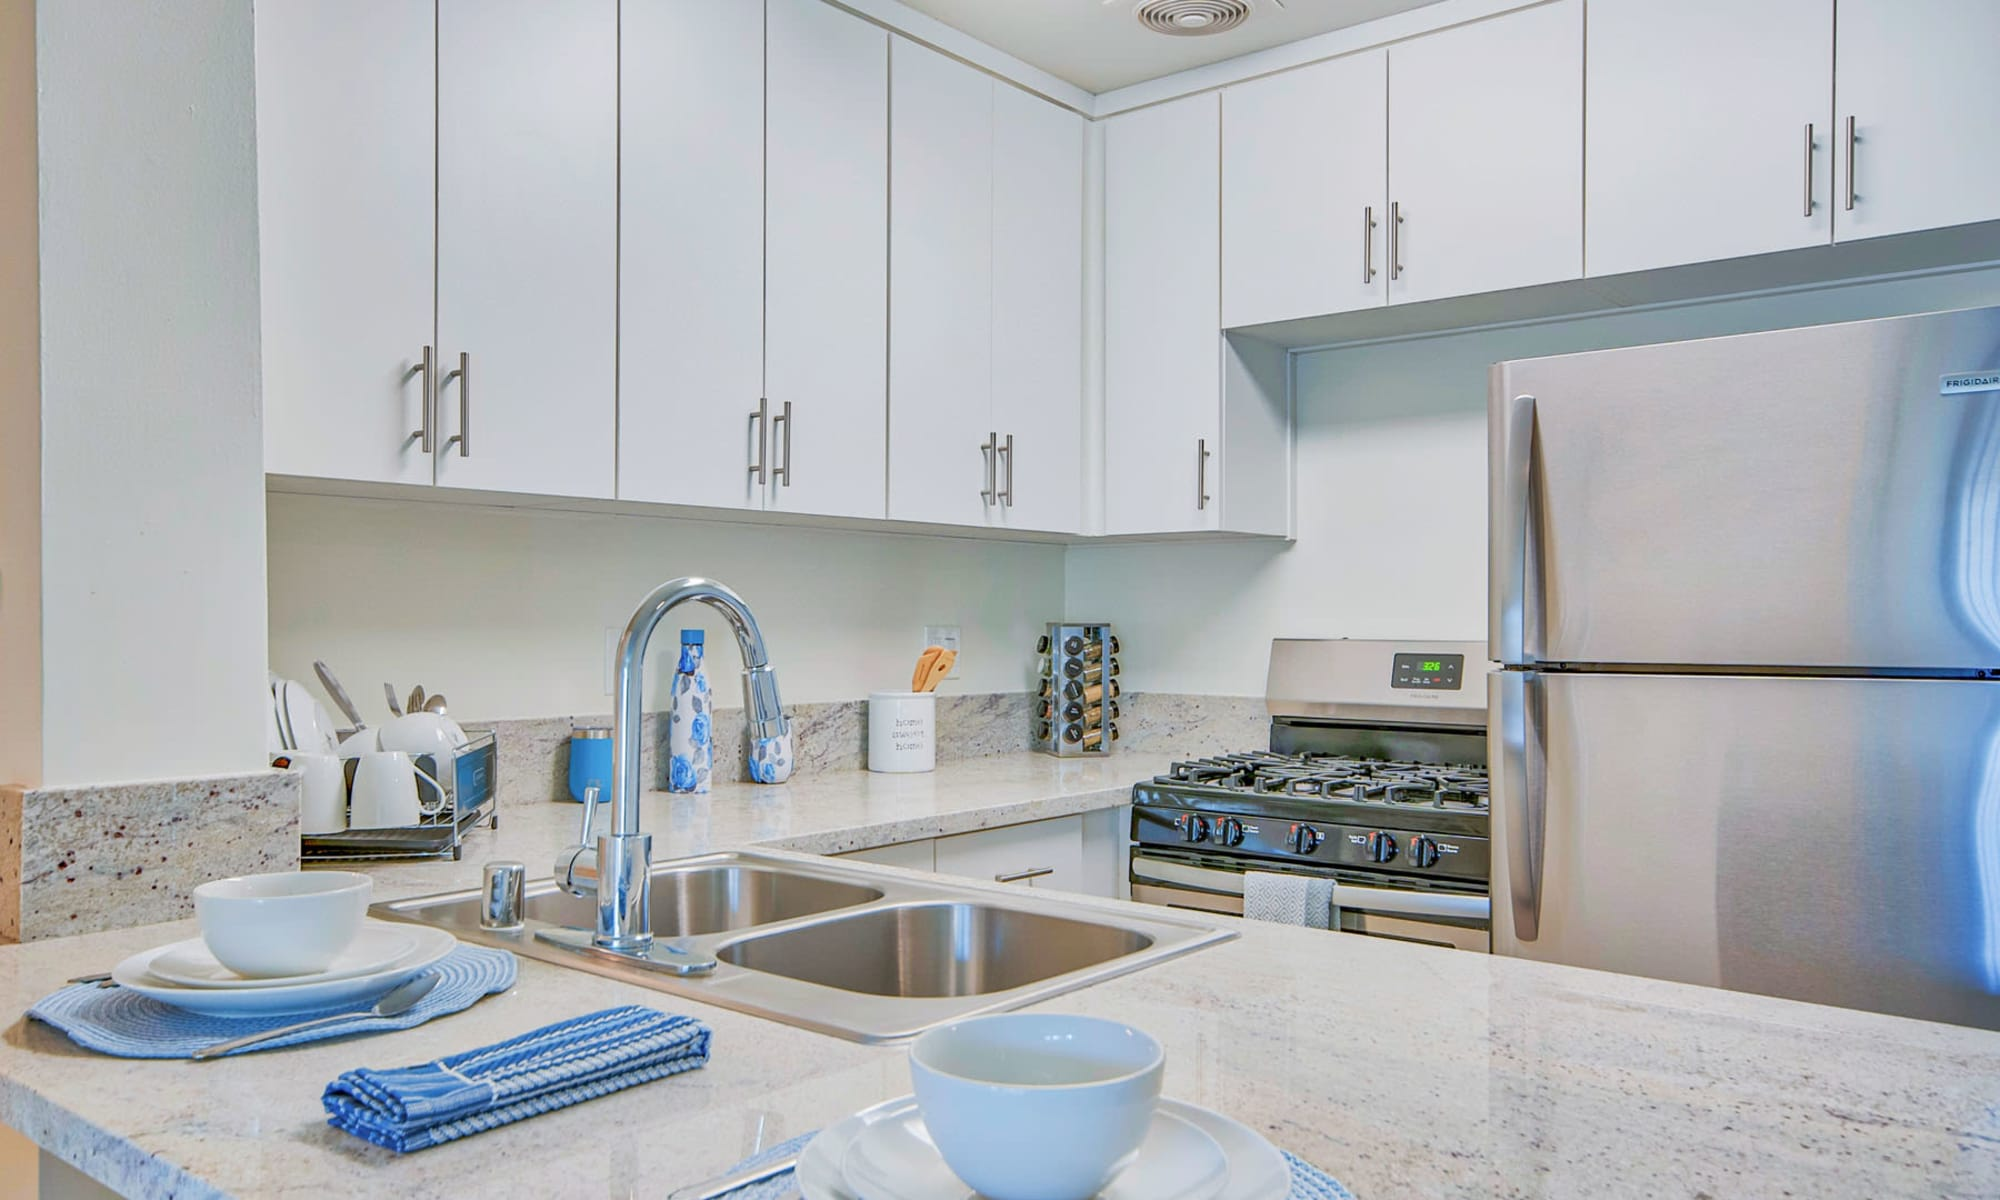 Spacious one bedroom home's kitchen with granite countertops and stainless-steel appliances at Villa Vicente in Los Angeles, California